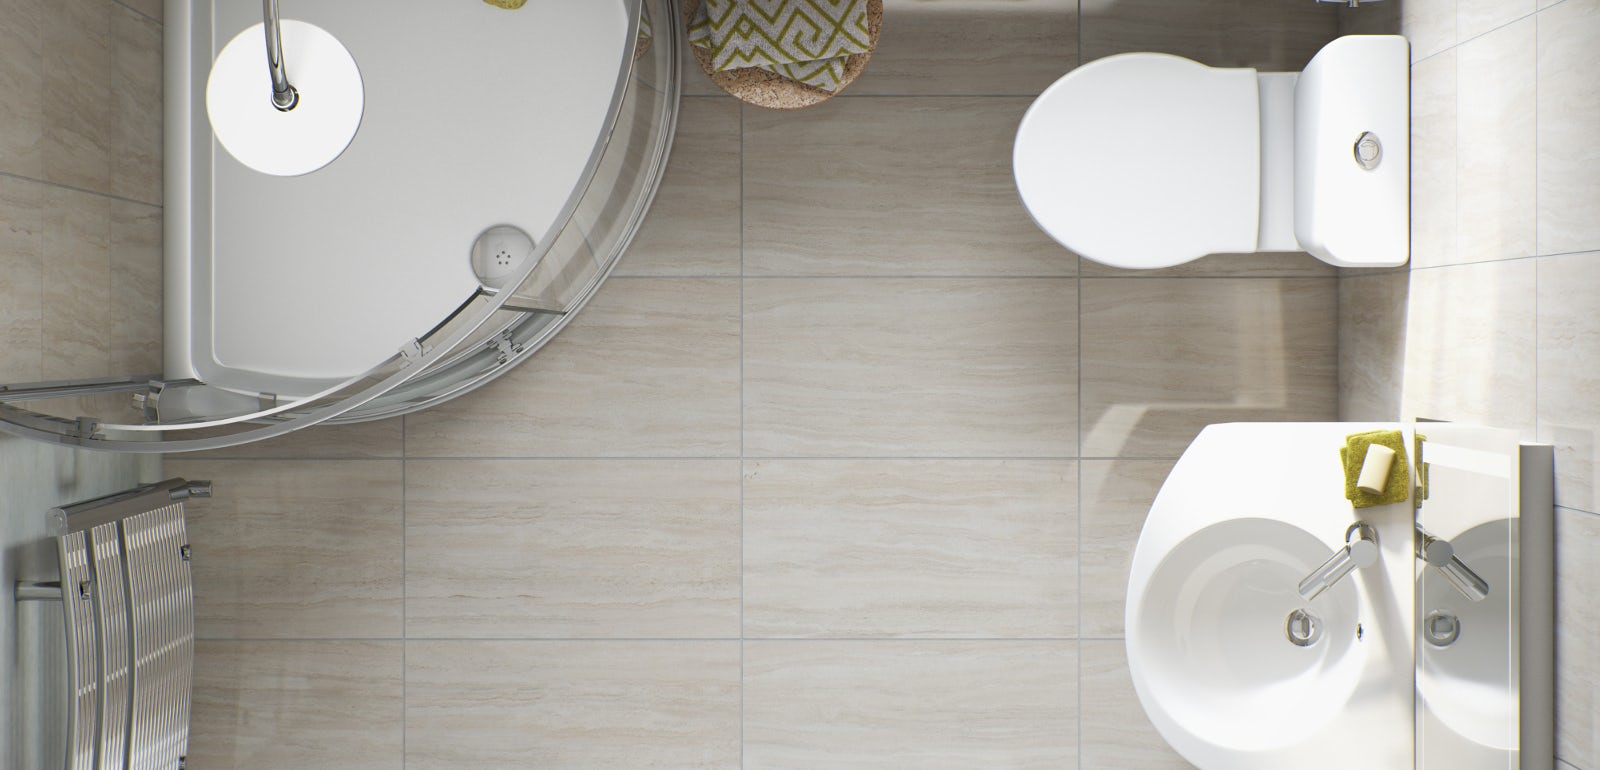 Exceptionnel A Guide To Planning Your Bathroom Layout